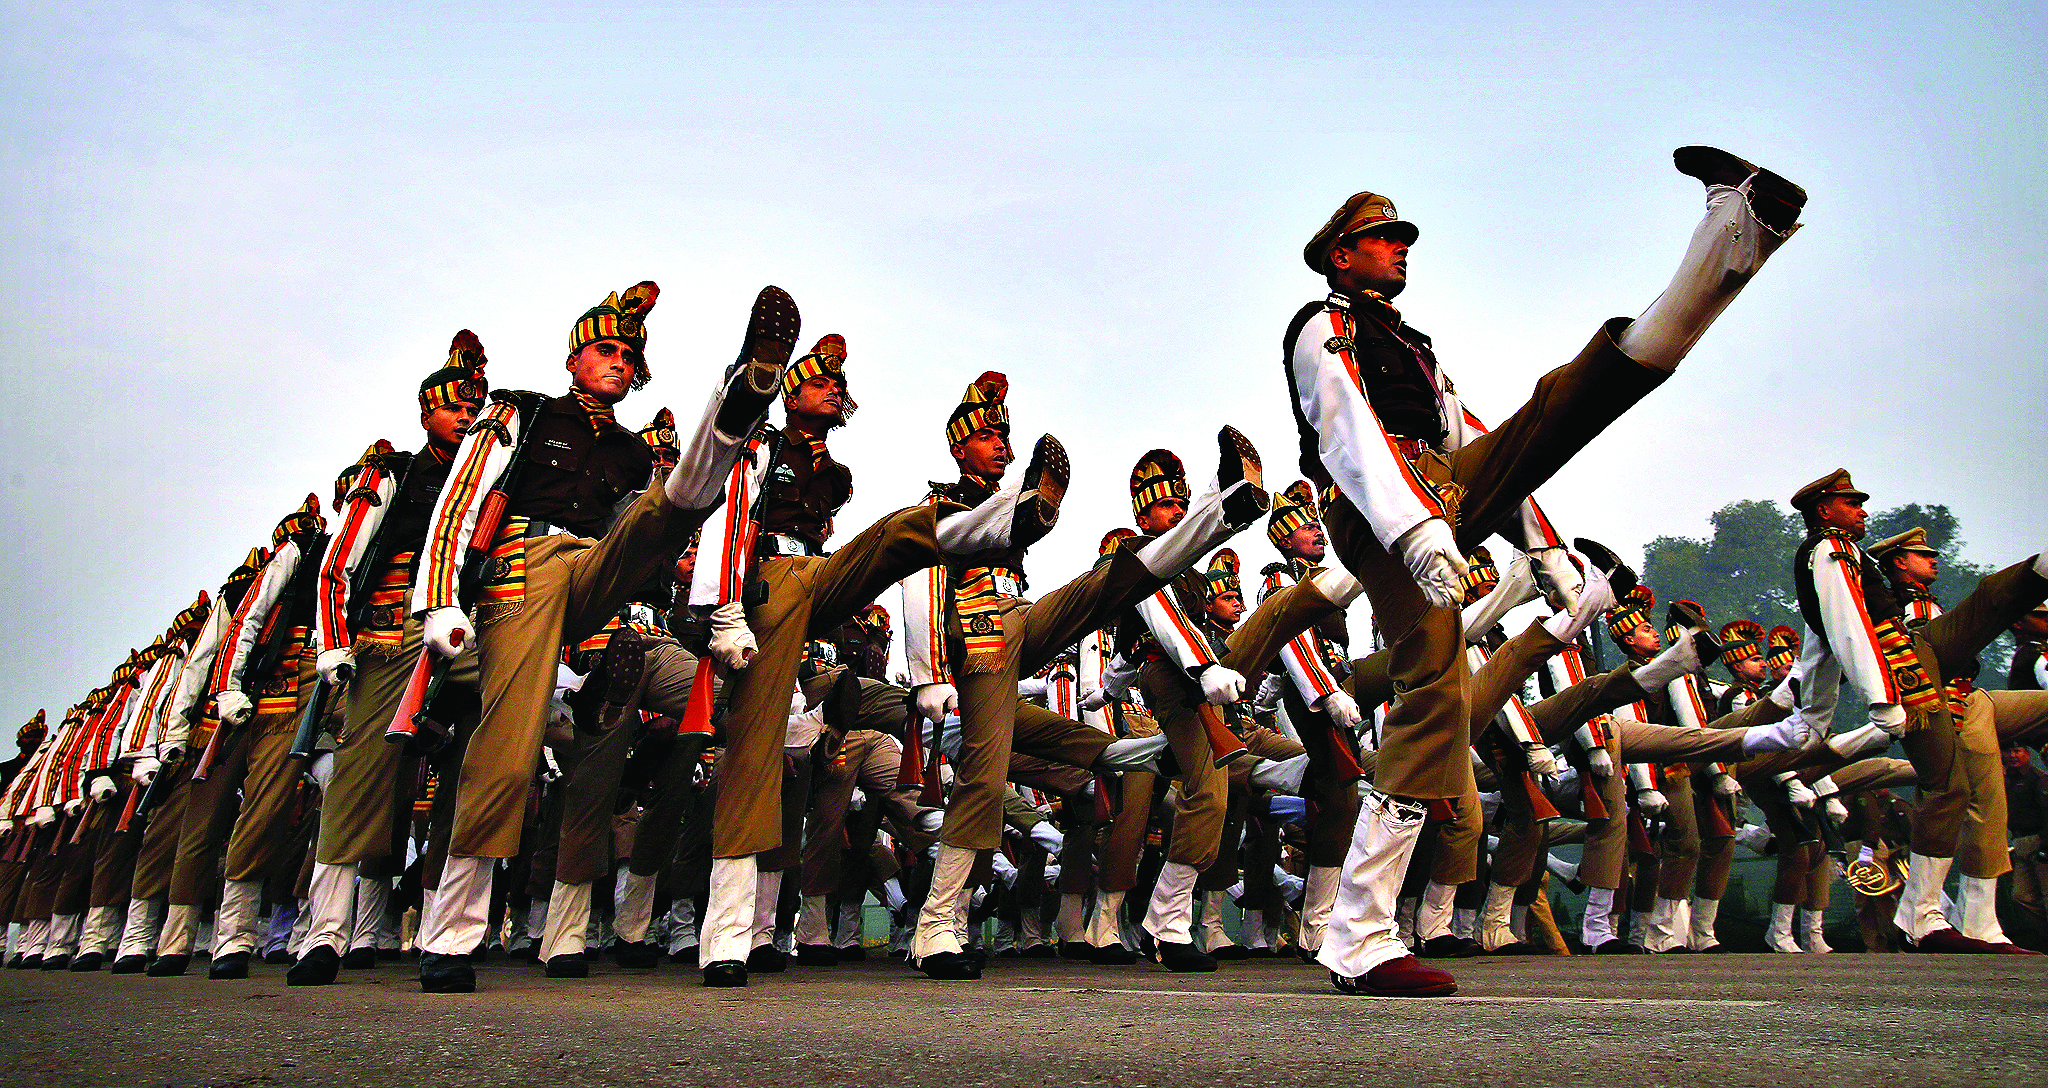 Indian soldiers march during a rehearsal for the upcoming Republic Day parade in New Delhi, India, Monday, Jan. 13, 2014. Indian Republic Day is celebrated on Jan. 26 every year. (AP Photo/Saurabh Das)